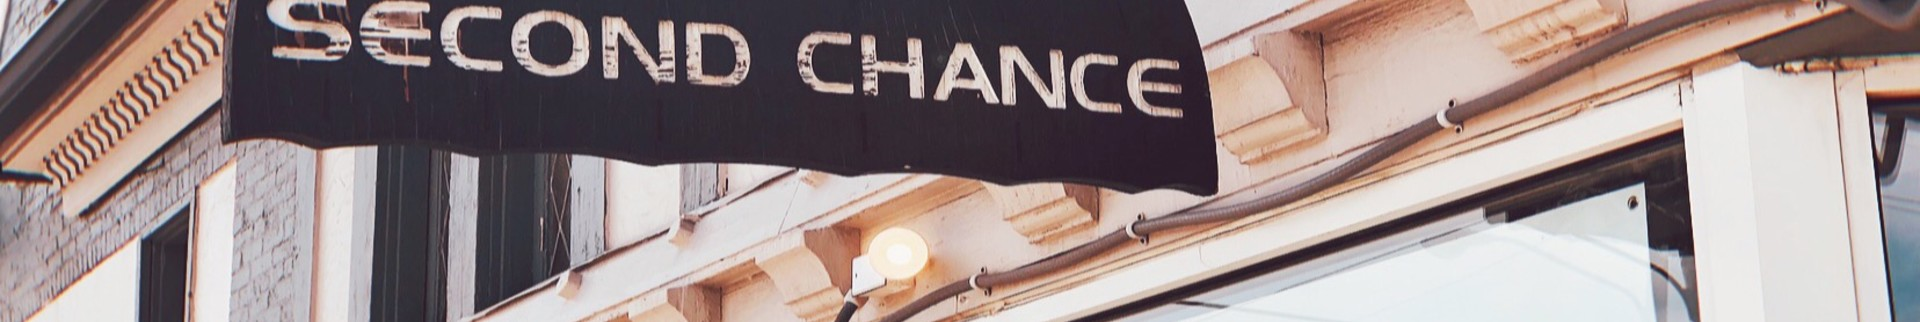 Second Chance Consignment Shop's banner image.